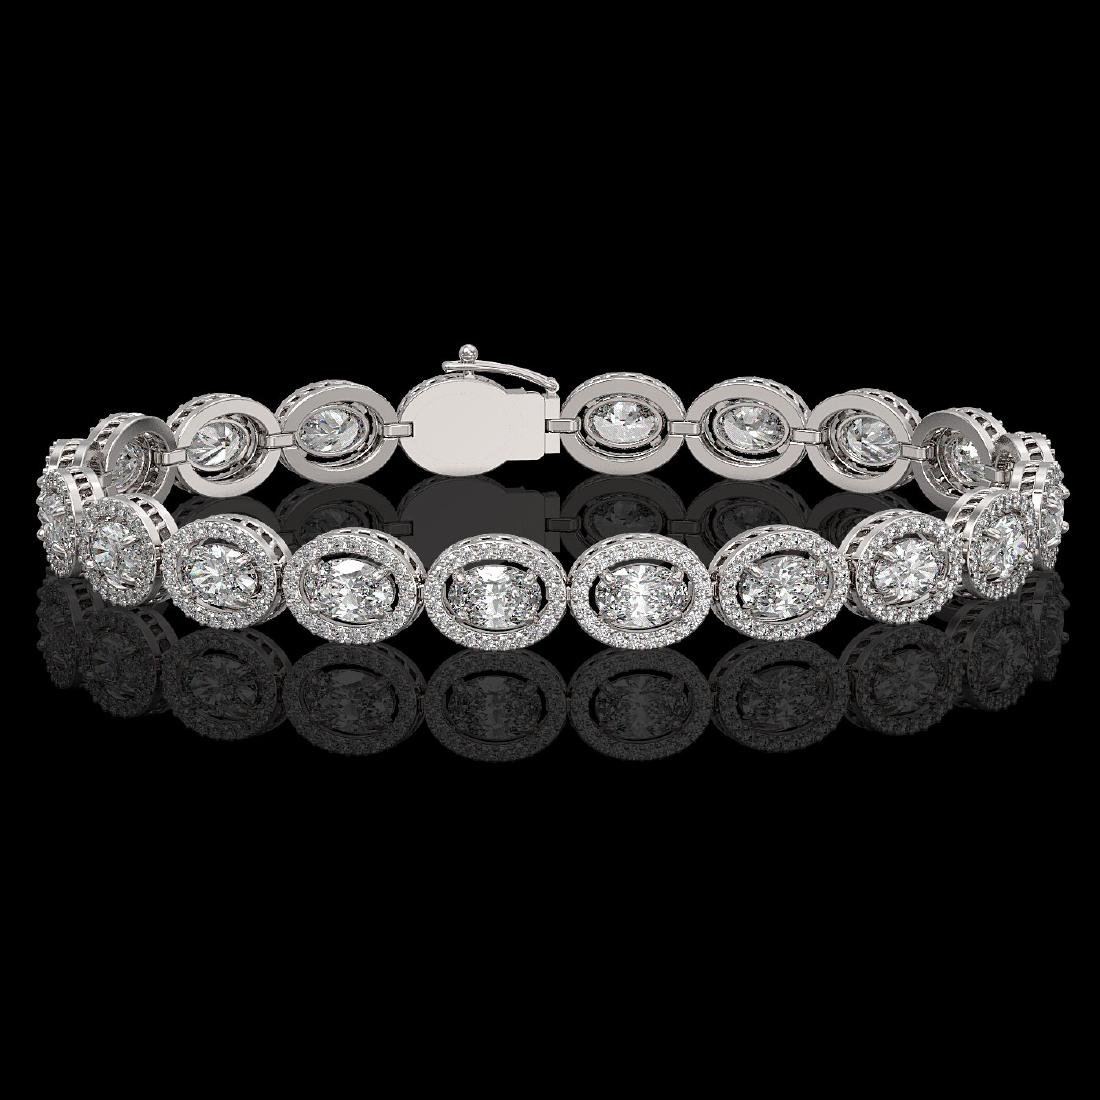 13.25 CTW Oval Diamond Designer Bracelet 18K White Gold